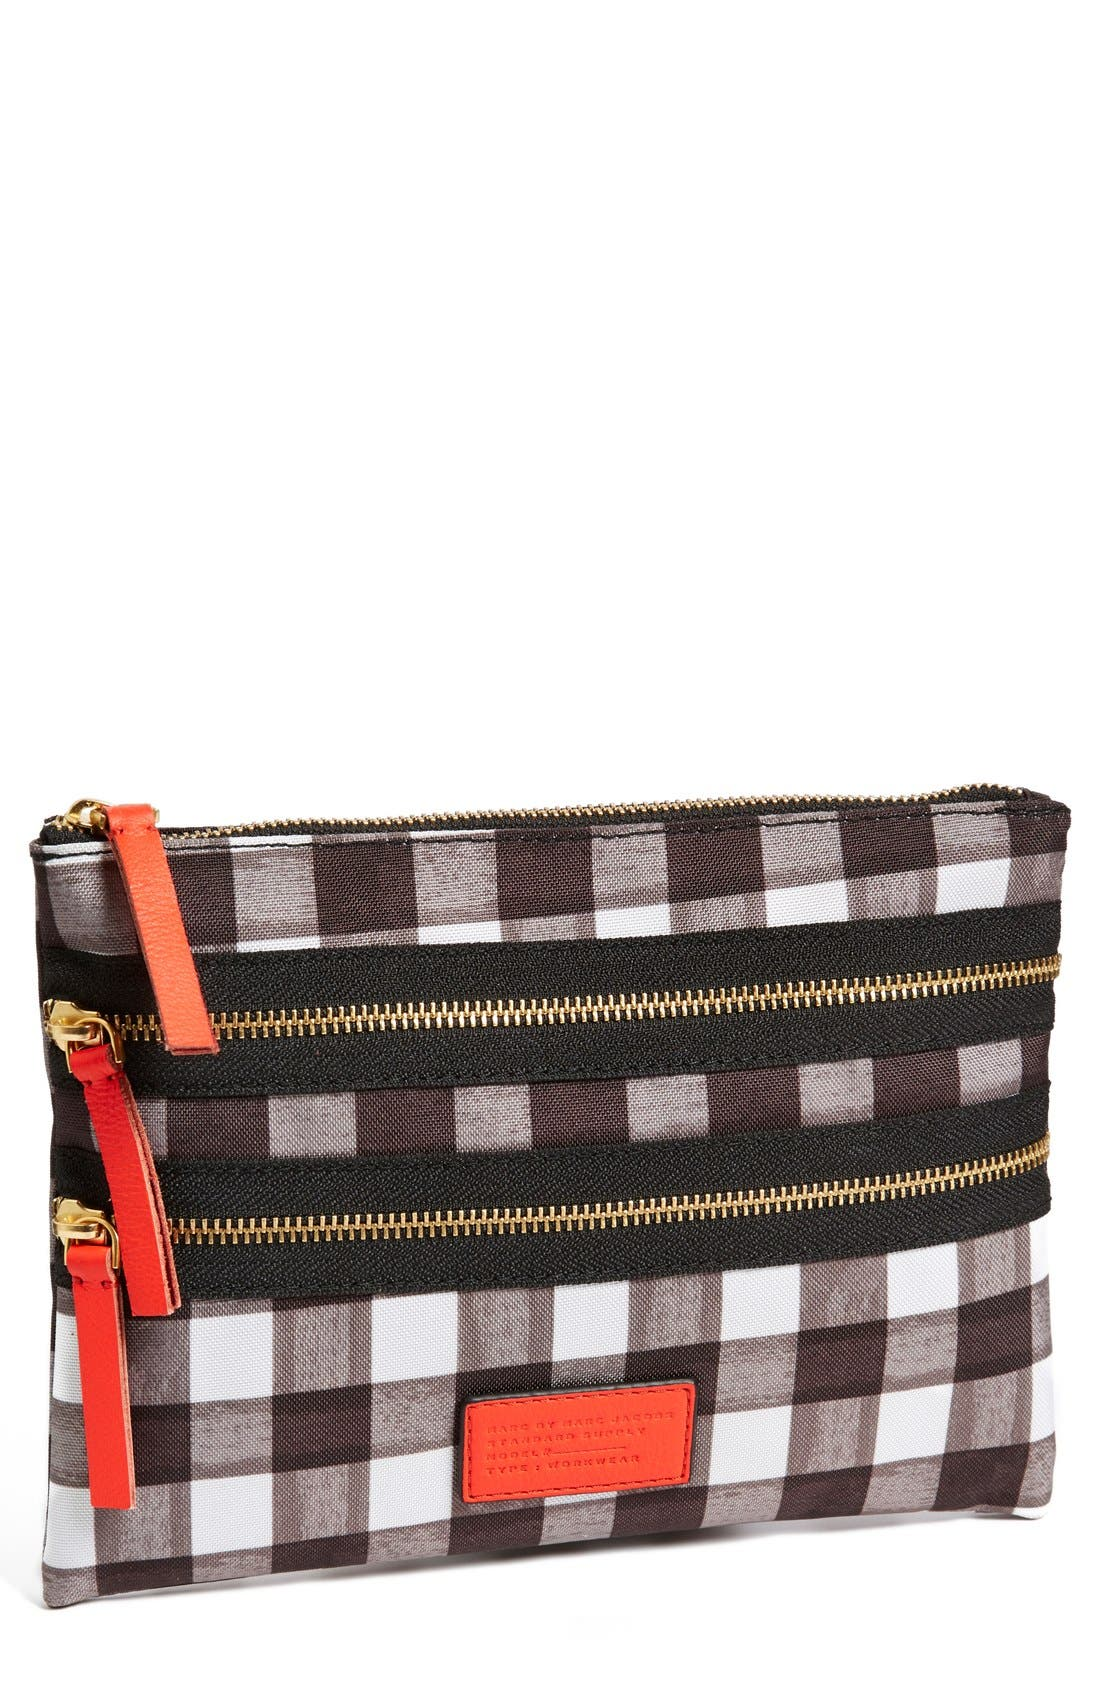 Main Image - MARC BY MARC JACOBS 'Domo Arigato' Case